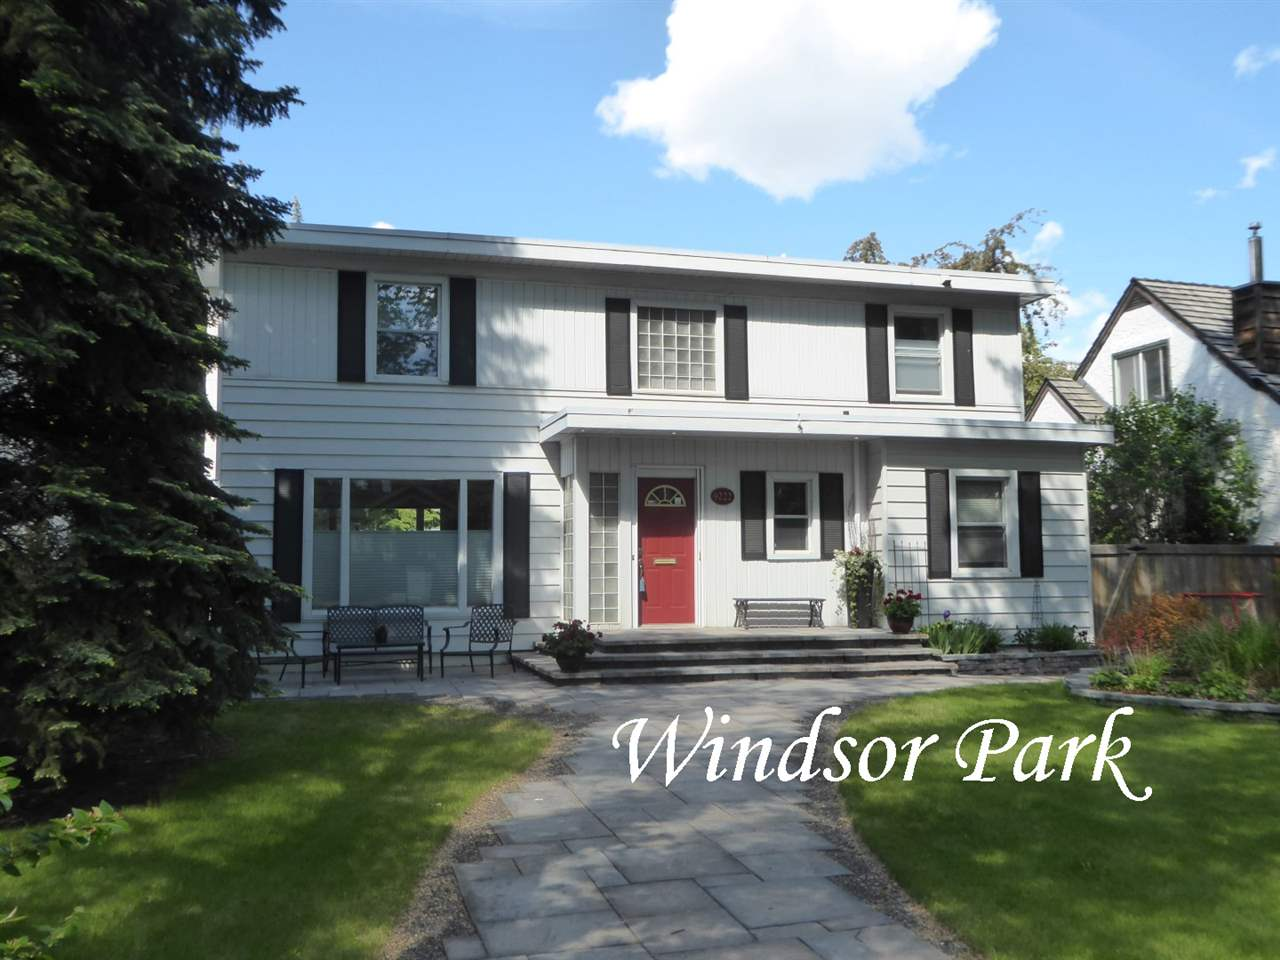 Walk-able Windsor Park! This attractive 2057 sq ft 2-story home has all the warmth & charm of a 50?s character home w/many updates including a tremendous addition that features a modern kitchen w/SS appliances, an abundance of cupboard & counter space, a bright breakfast nook, huge west windows & a large mudroom that has access to the sunny west yard filled w/colorful perennials. Additional main floor features include large formal living & dining rooms perfect for entertaining, a den/office, a 2-pce powder room & the roomy front foyer. The upper level has 3 good sized BDRMS & an updated 3-pce bath. Solid hardwood is found throughout most of the main & upper levels. The lower level has a family room, BDRM, 3-pce ensuite, a spacious laundry room & the utility room w/ amazing storage. Beautiful flagstone patios & walk-ways welcome the front yard & there is a 21.23 X 25.83 double detached garage. This home is perfect for a family or a professional couple working at the U of A or hospitals. A must to view!